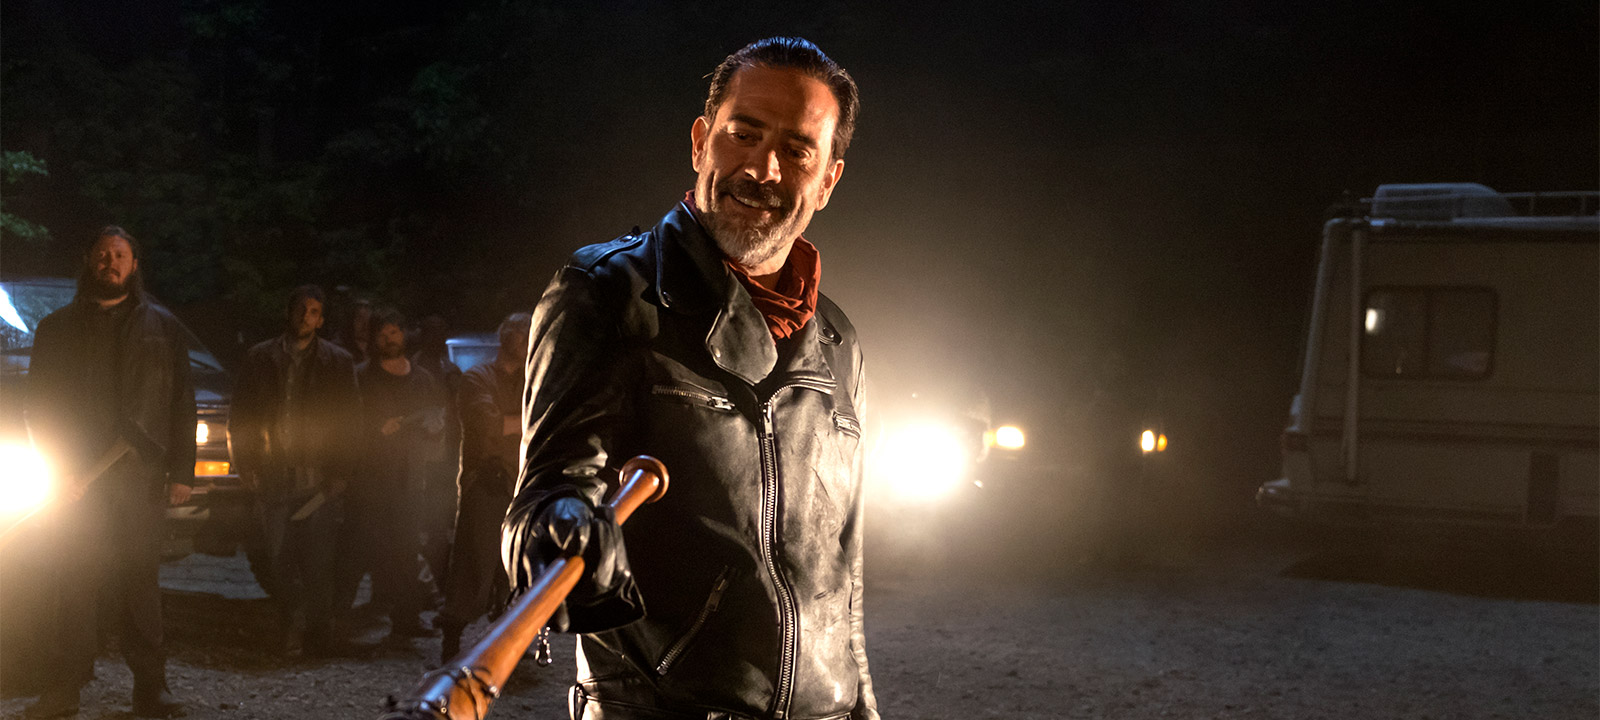 the-walking-dead-season-7-negan-morgan-800×600-trailer-2